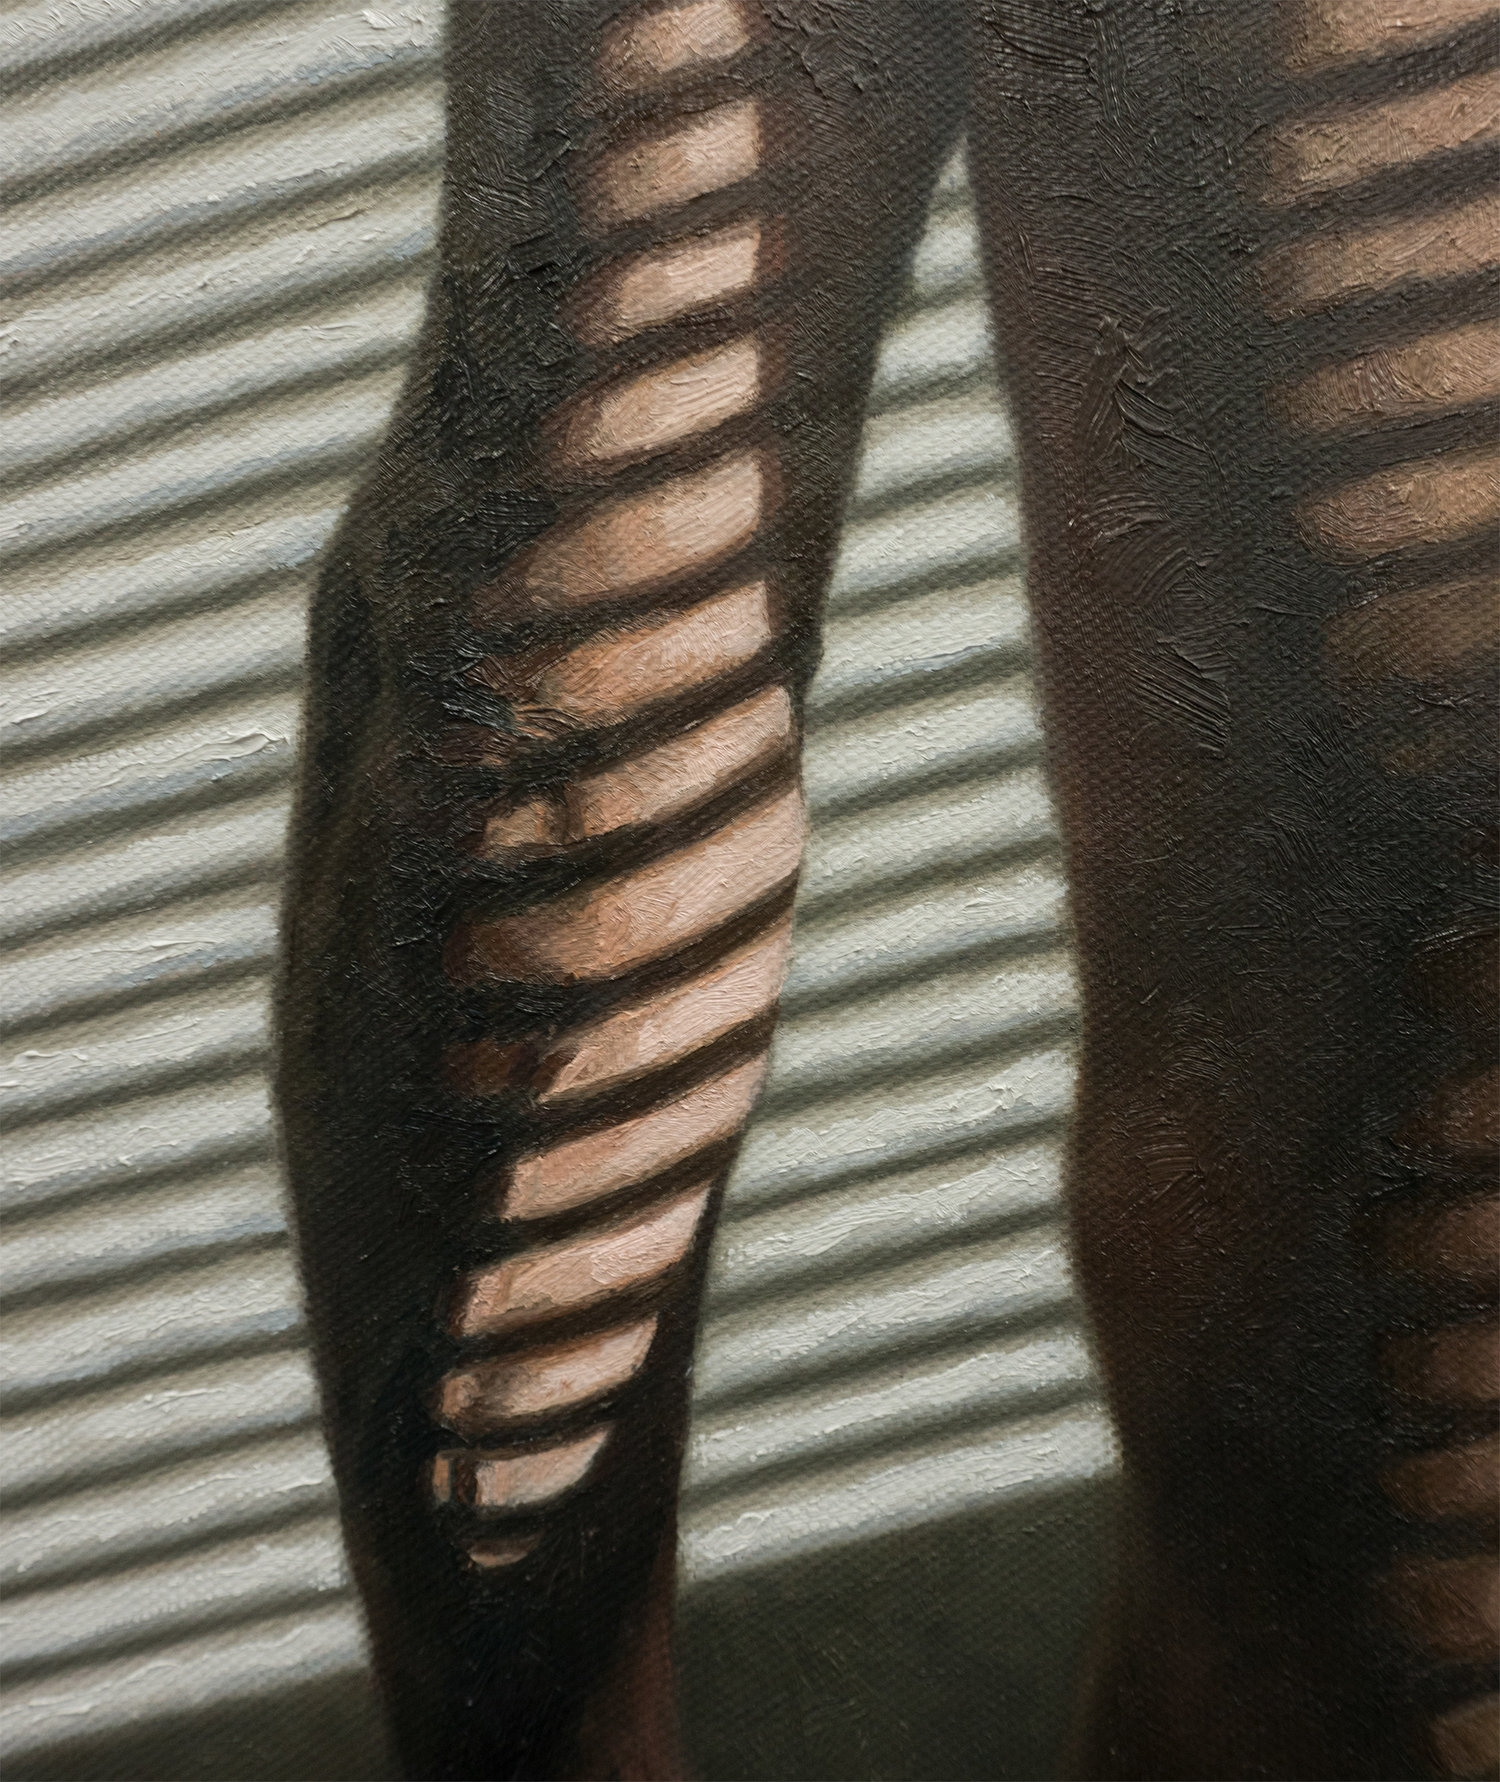 NathanBradHall_Afternoon_Blinds_Elbow_CU.jpg